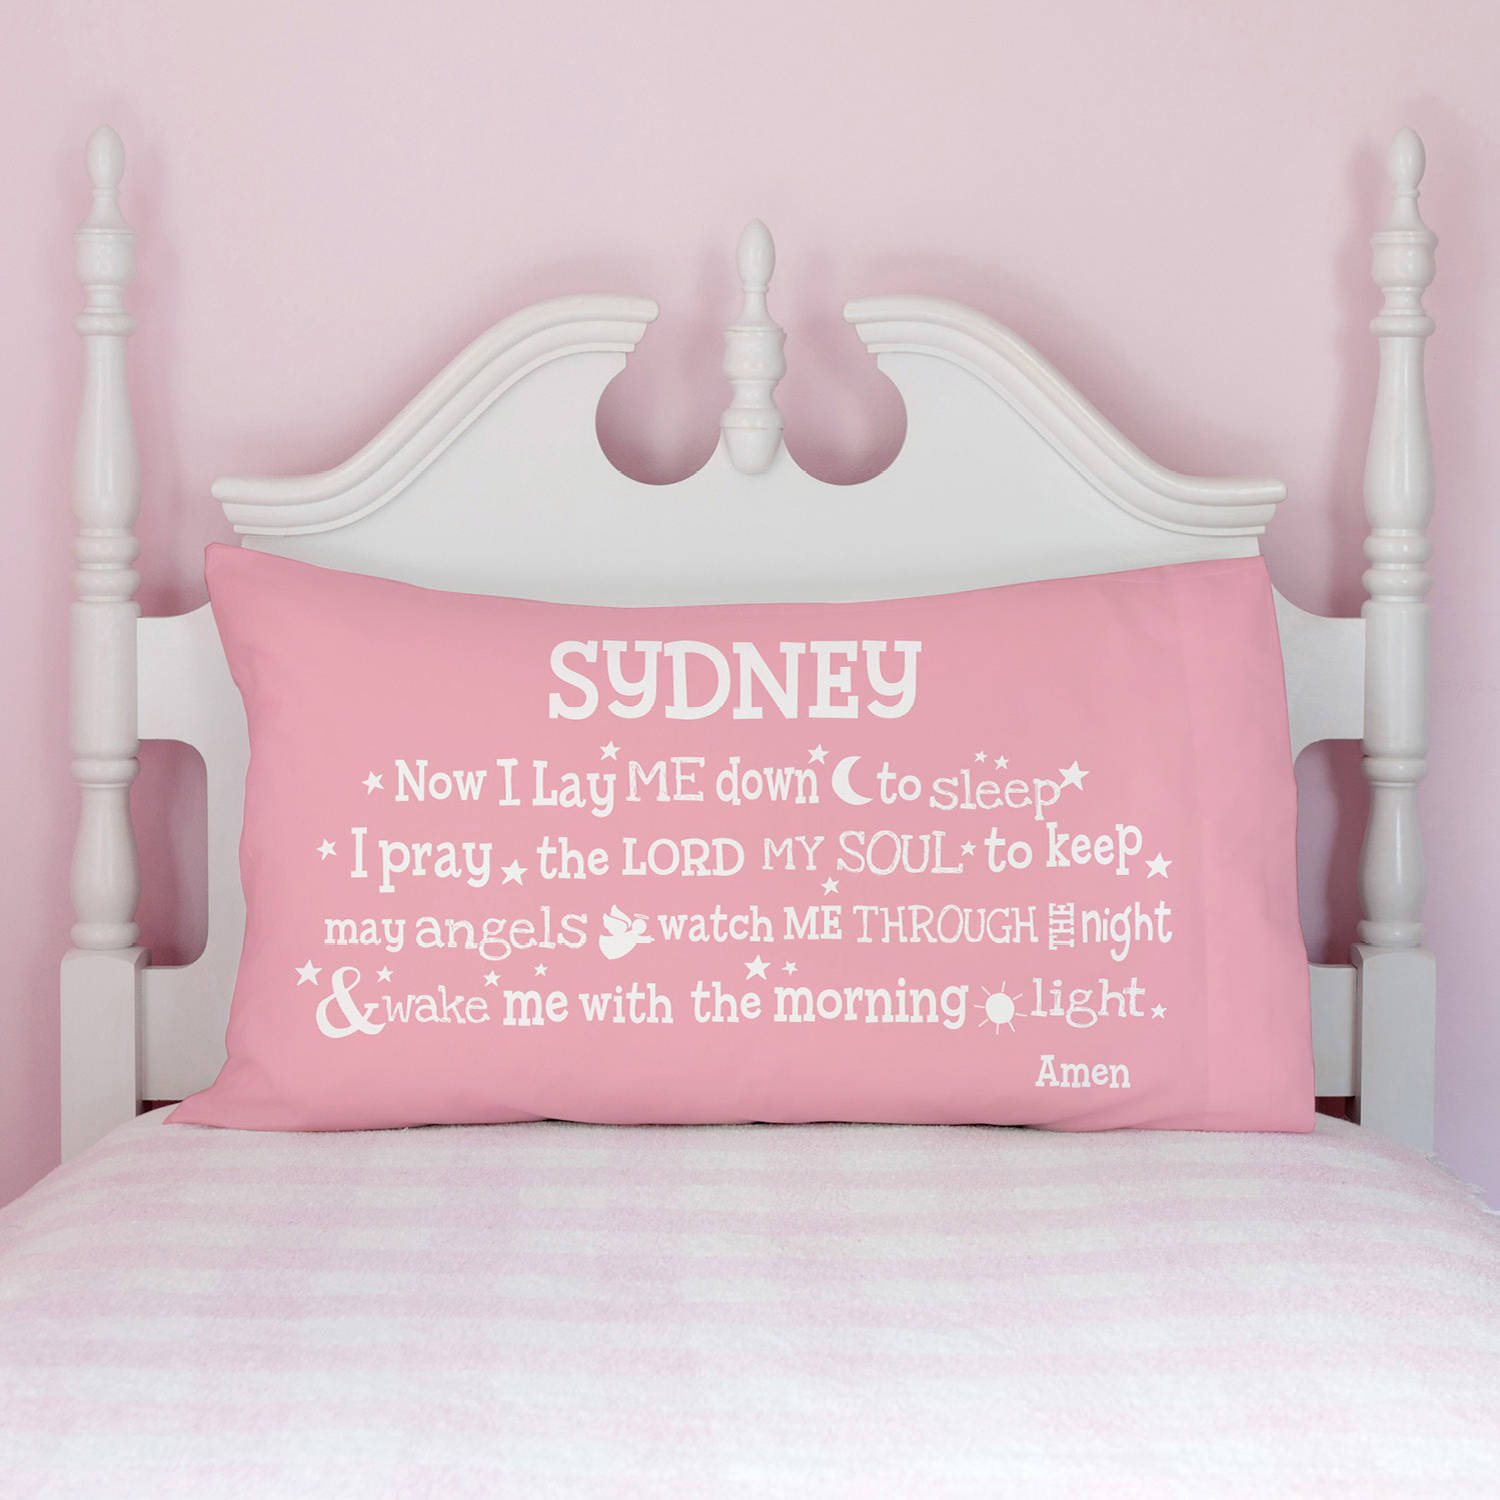 """Now I Lay Me Down To Sleep"" Personalized Pillowcase, 4 Colors to Choose From"